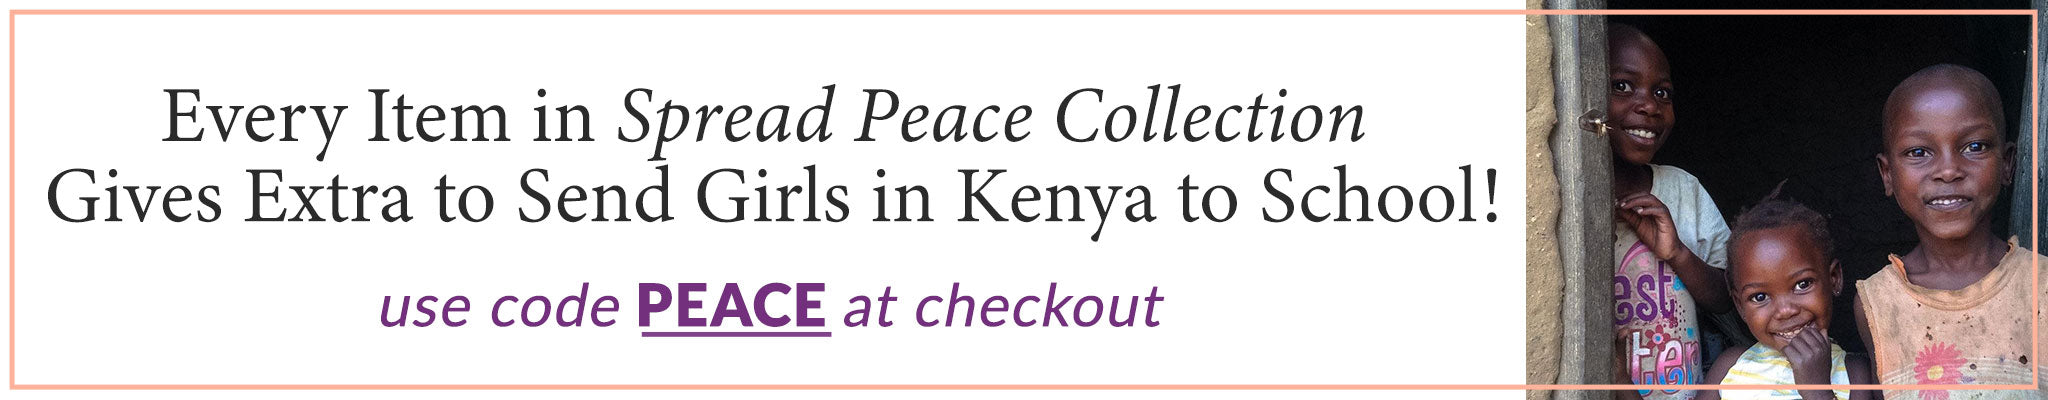 Every Item in Spread Peace Collection Gives Extra to Send Girls in Kenya to School! | Use code PEACE at checkout